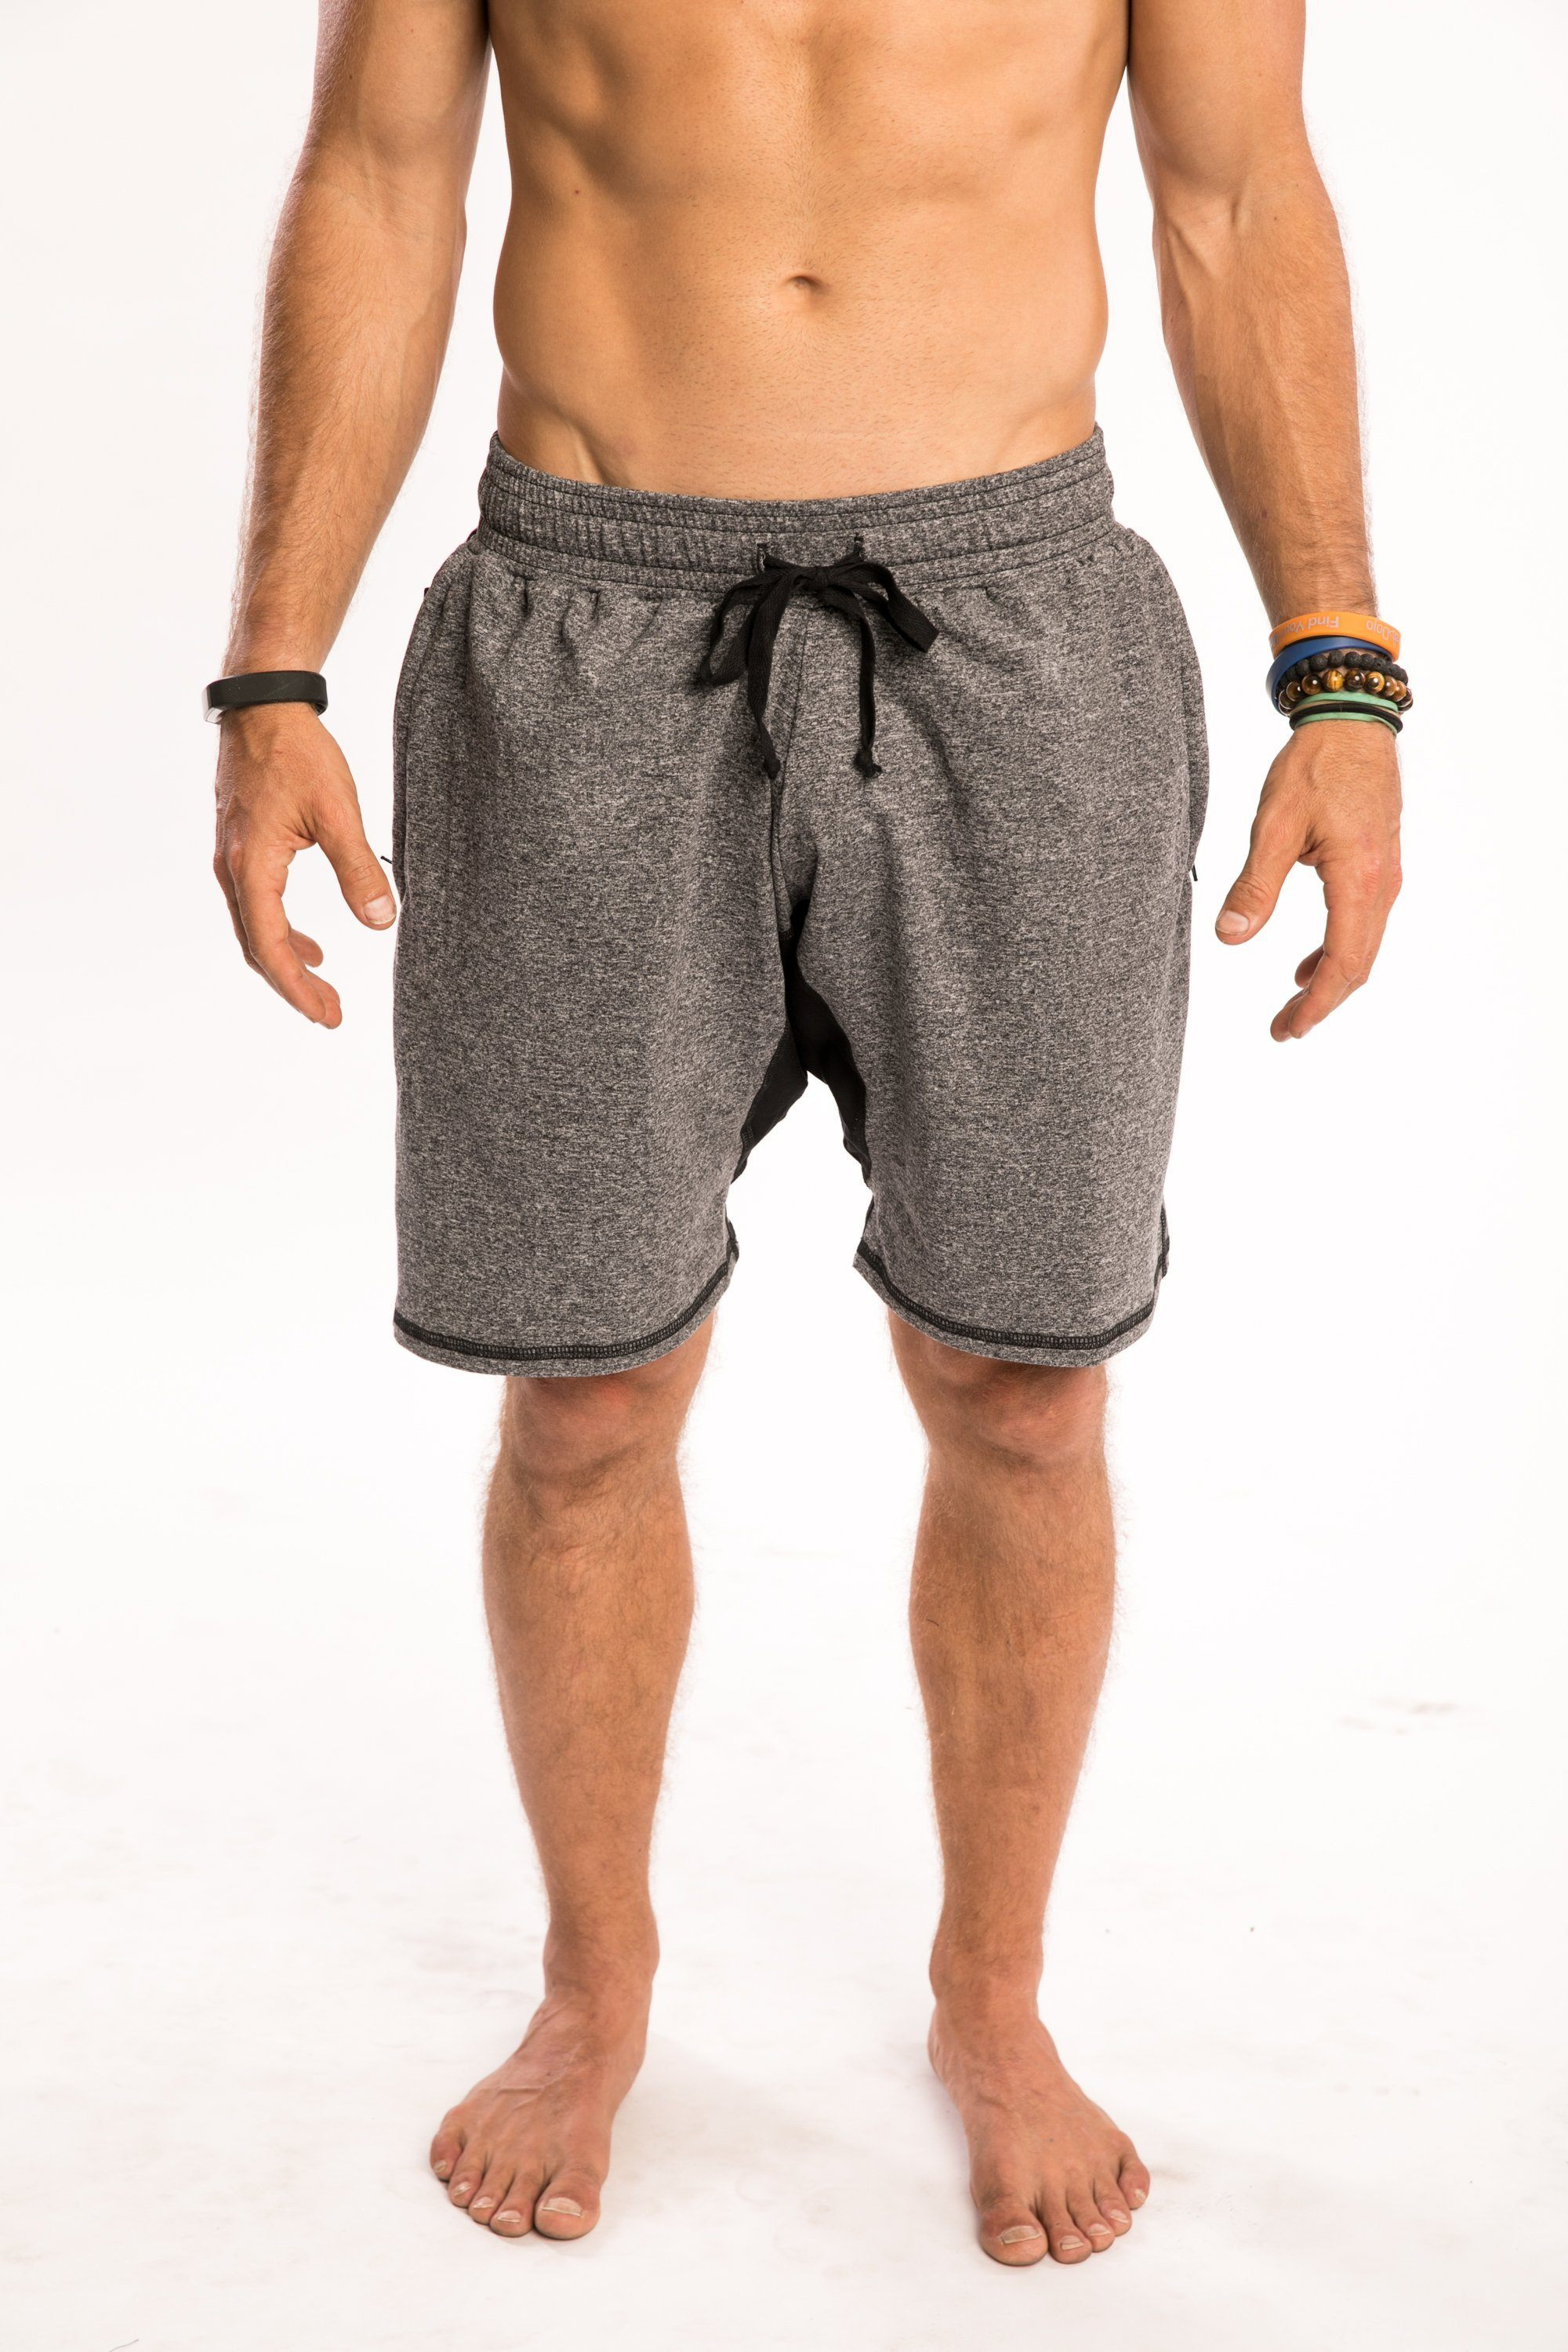 GRAY/BLACK Short-SHORTS-Pi Movement-XS-Pi Movement